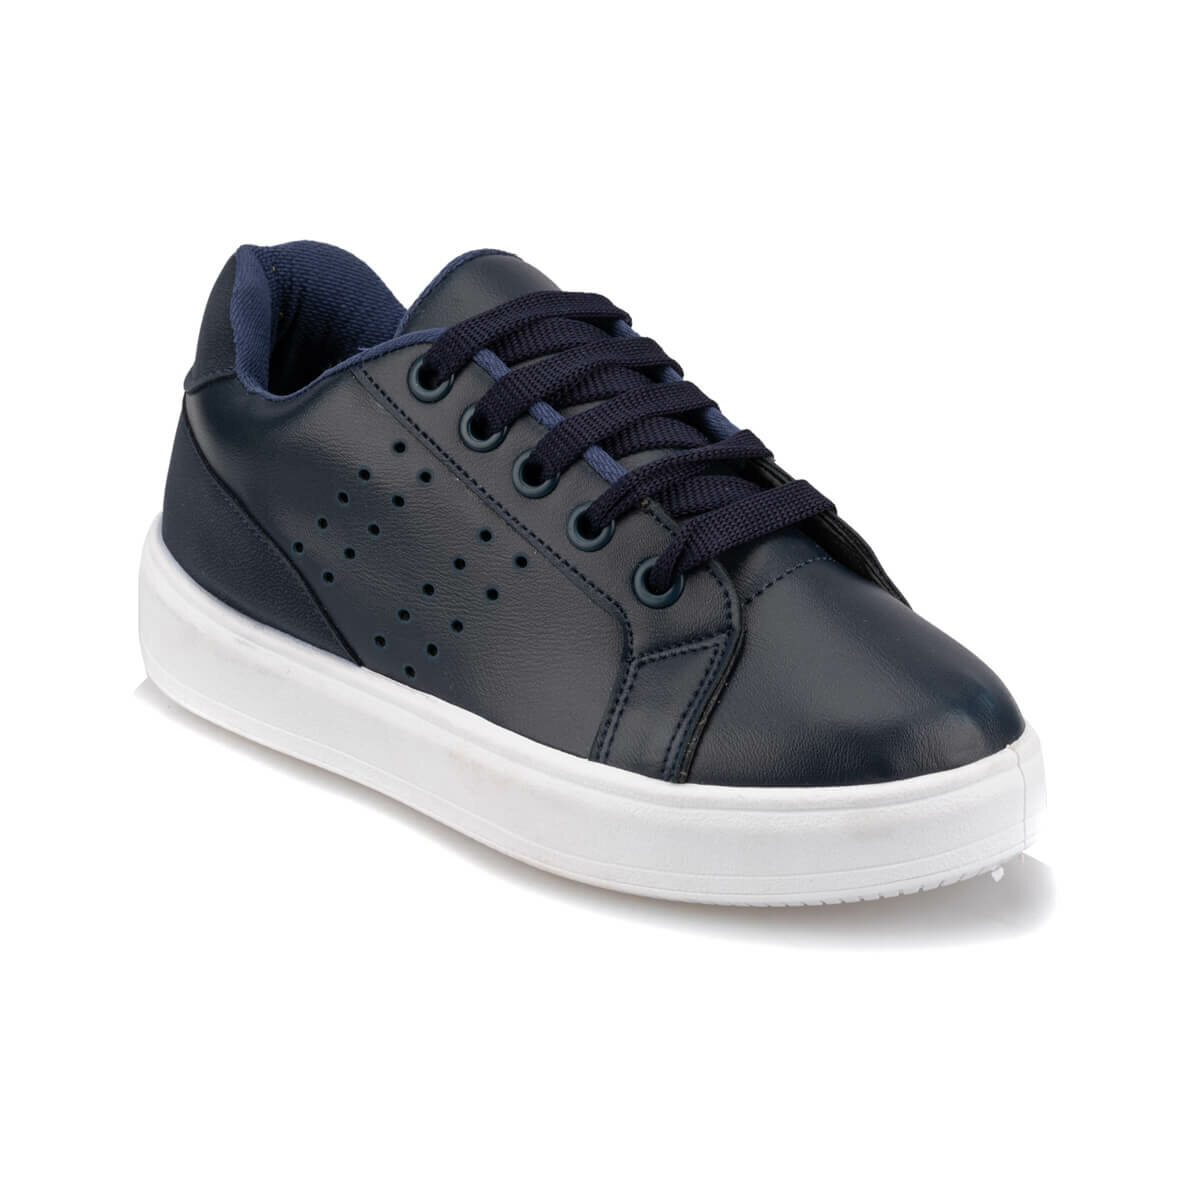 FLO 92.511876.F Navy Blue Male Child Sneaker Shoes Polaris